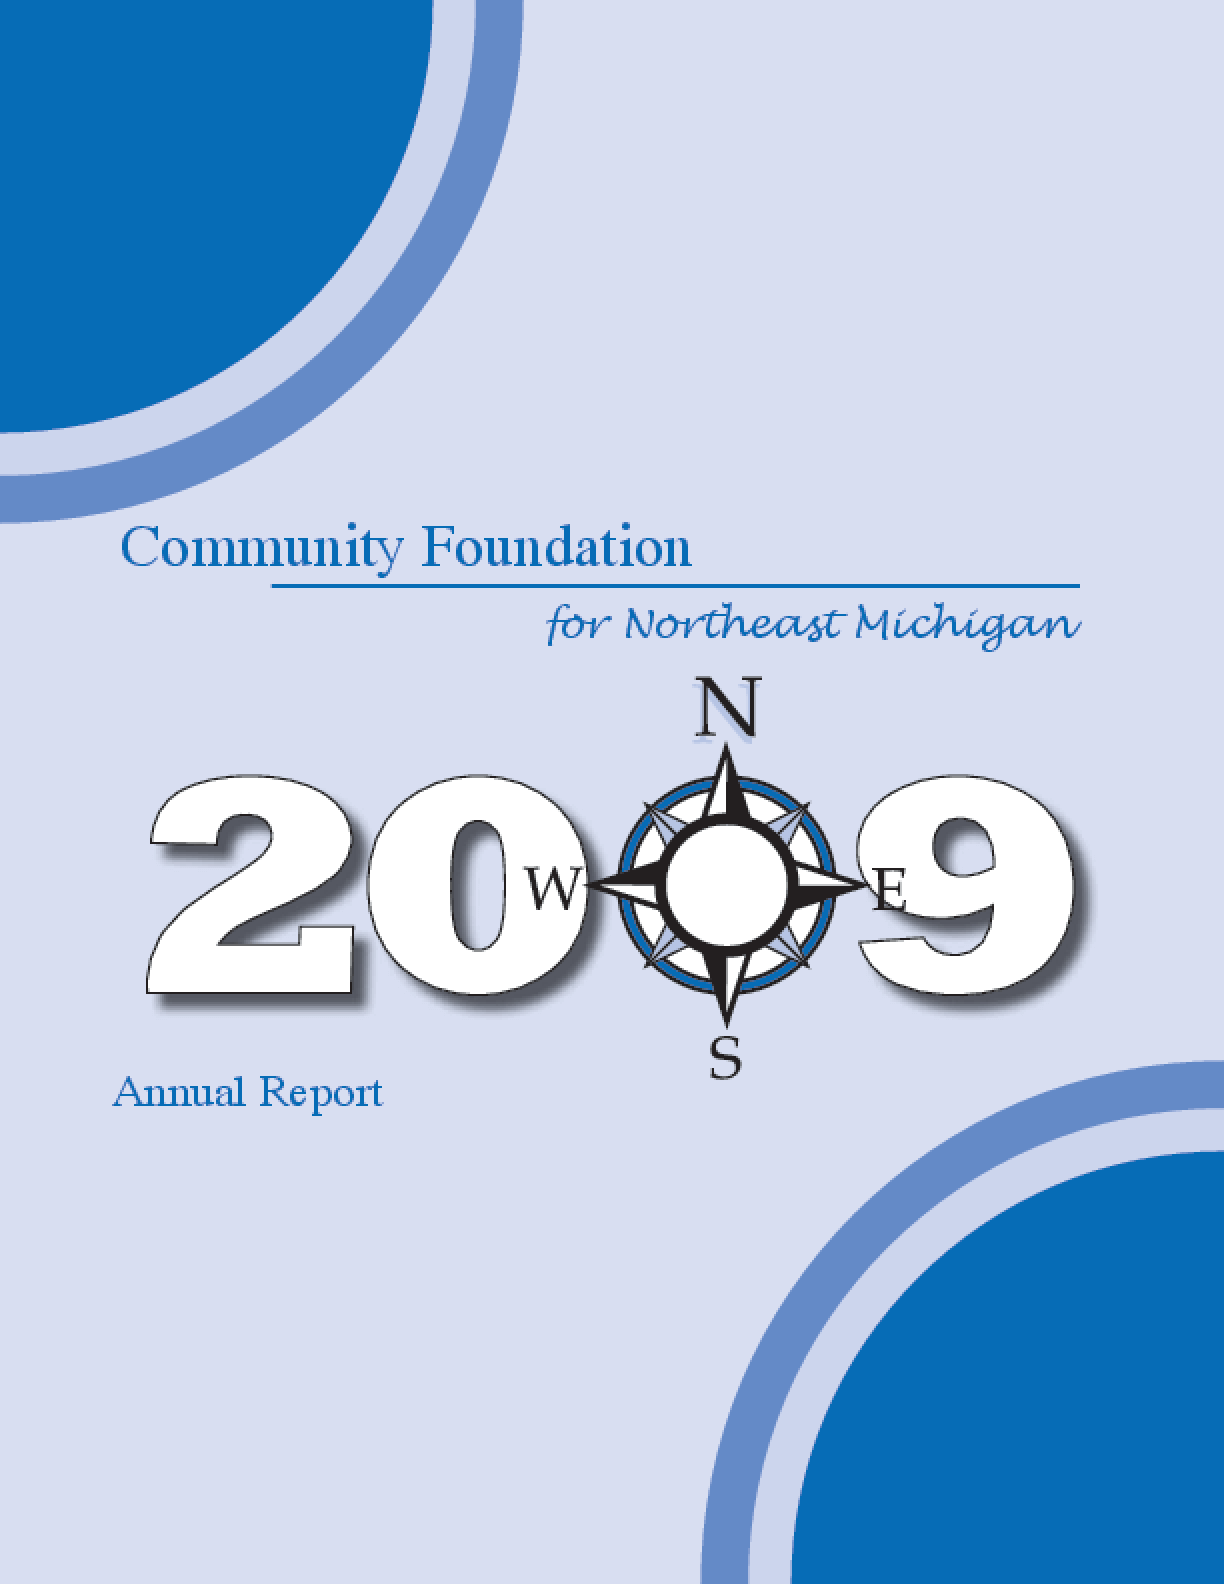 Community Foundation for Northeast Michigan - 2009 Annual Report